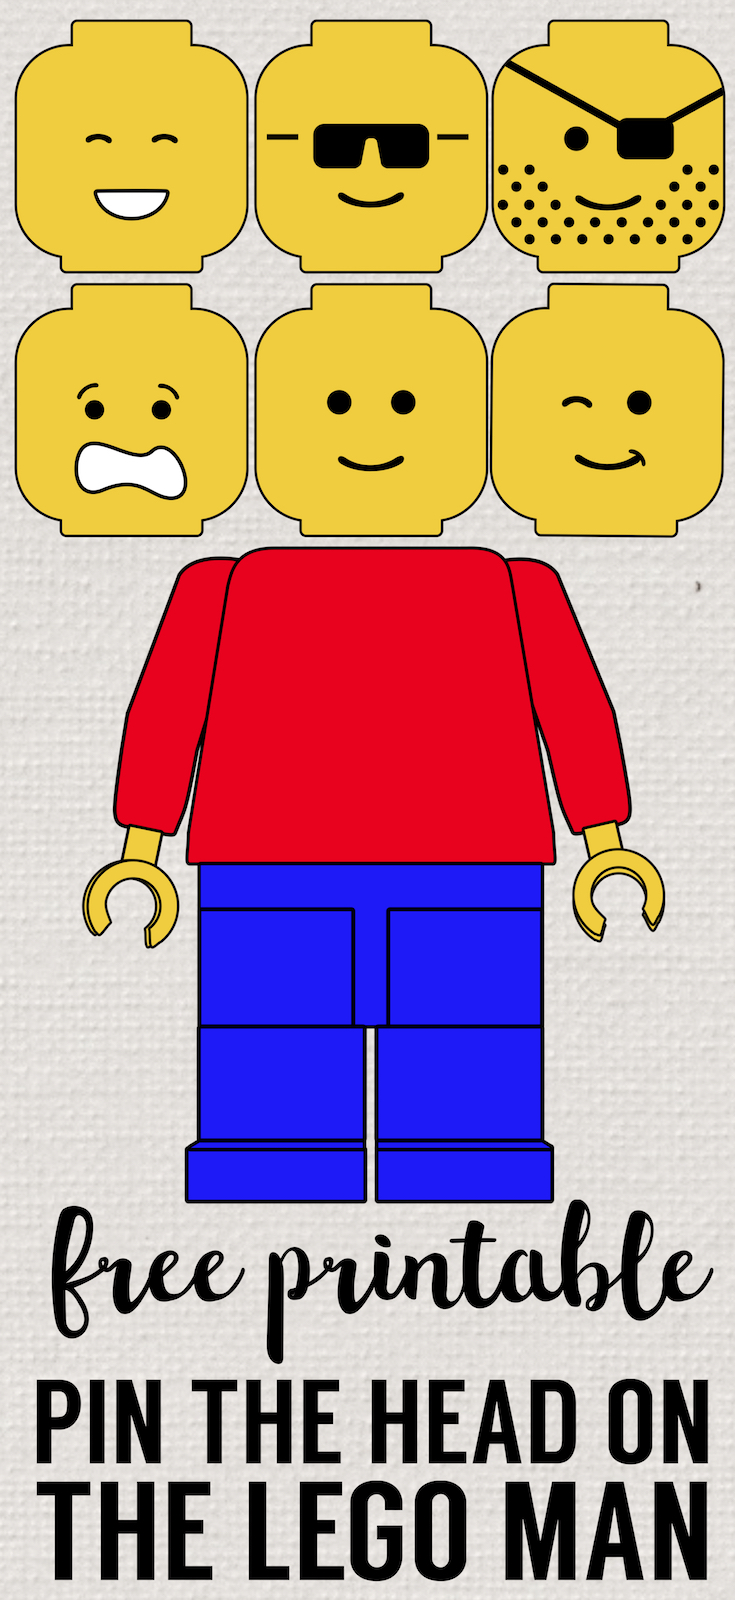 Pin the Head on the Lego Man Party Game Free Printable - Paper Trail Design